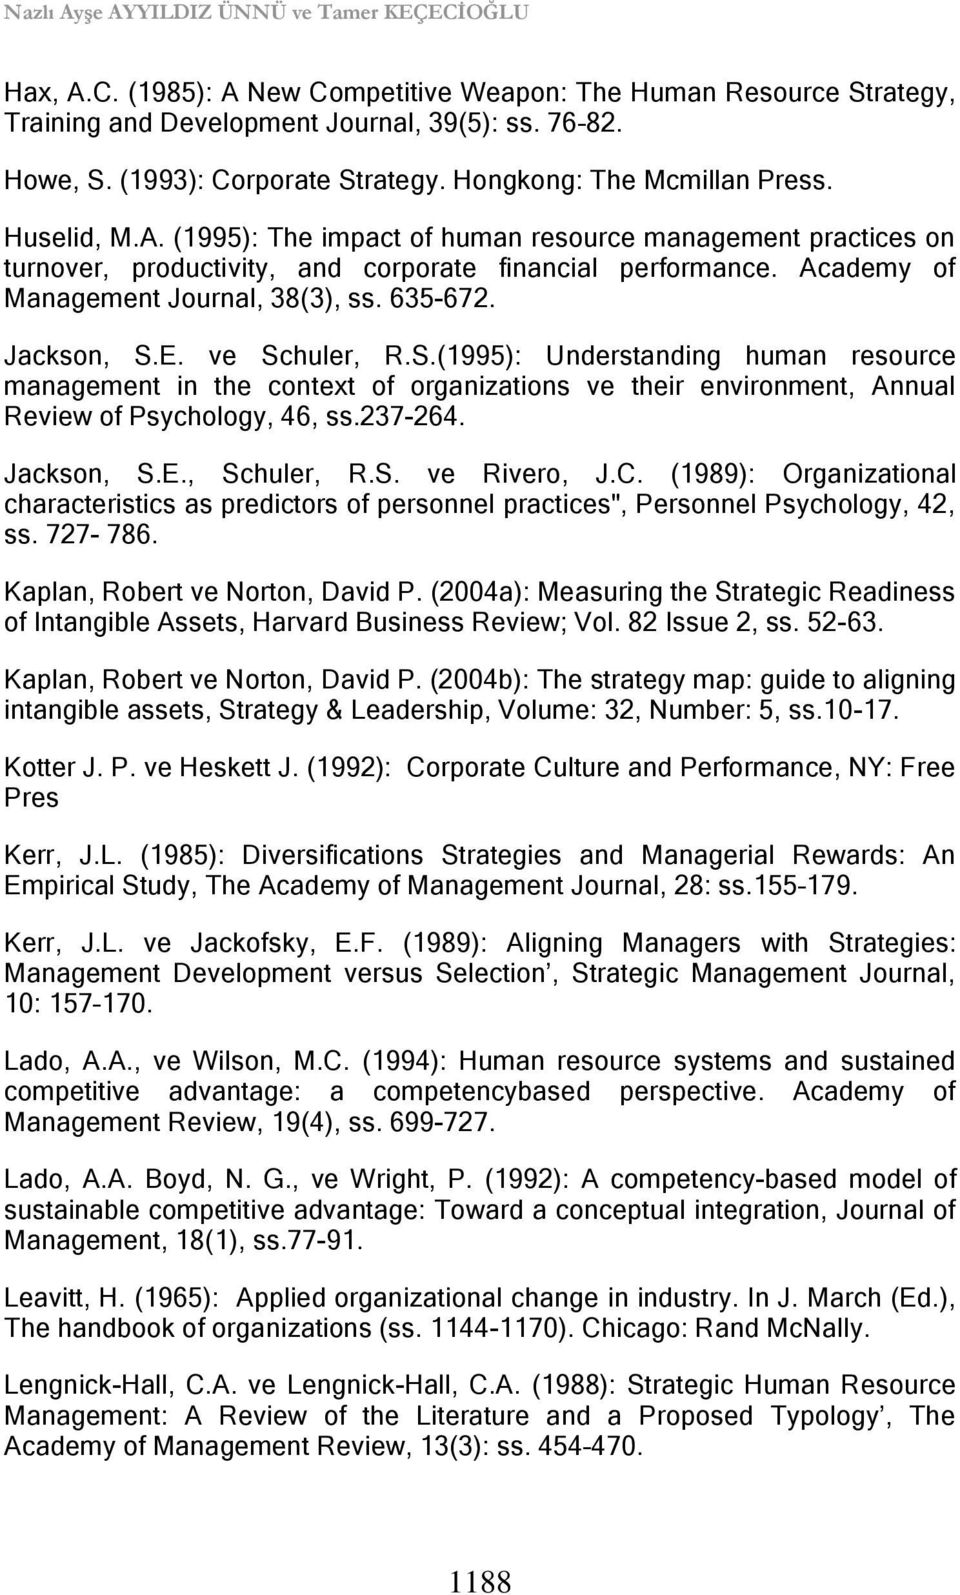 Academy of Management Journal, 38(3), ss. 635-672. Jackson, S.E. ve Schuler, R.S.(1995): Understanding human resource management in the context of organizations ve their environment, Annual Review of Psychology, 46, ss.